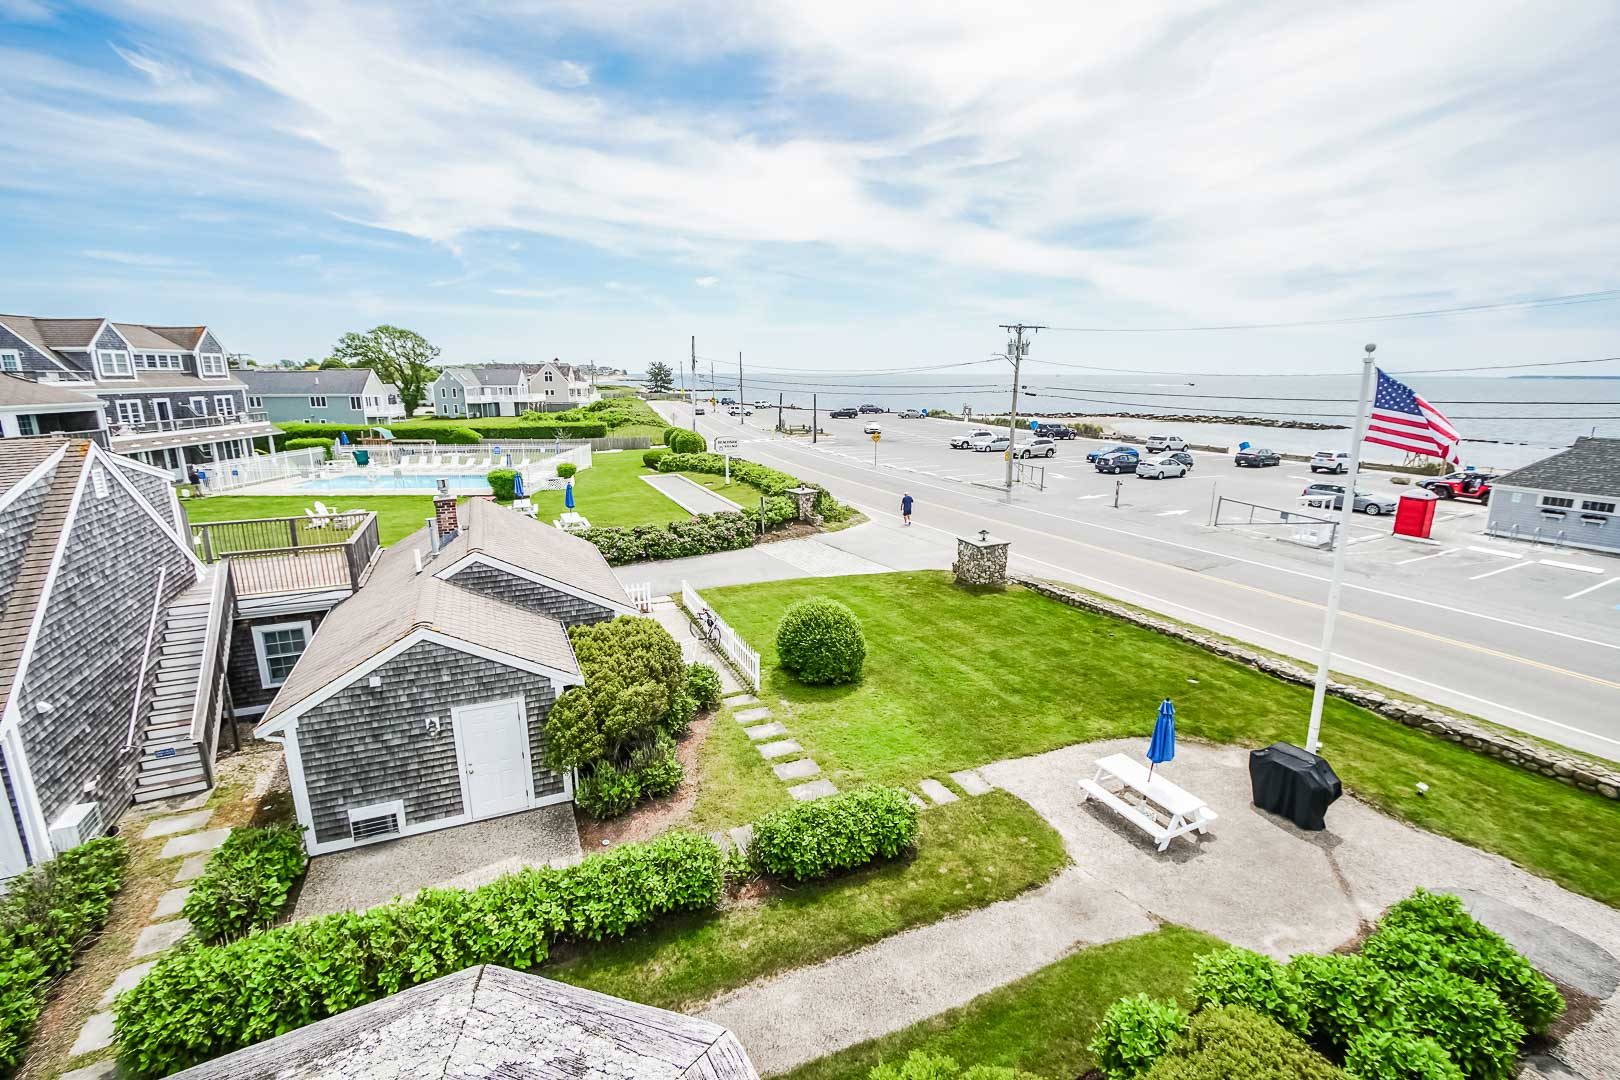 A colonial resort view at VRI's Beachside Village Resort in Massachusetts.